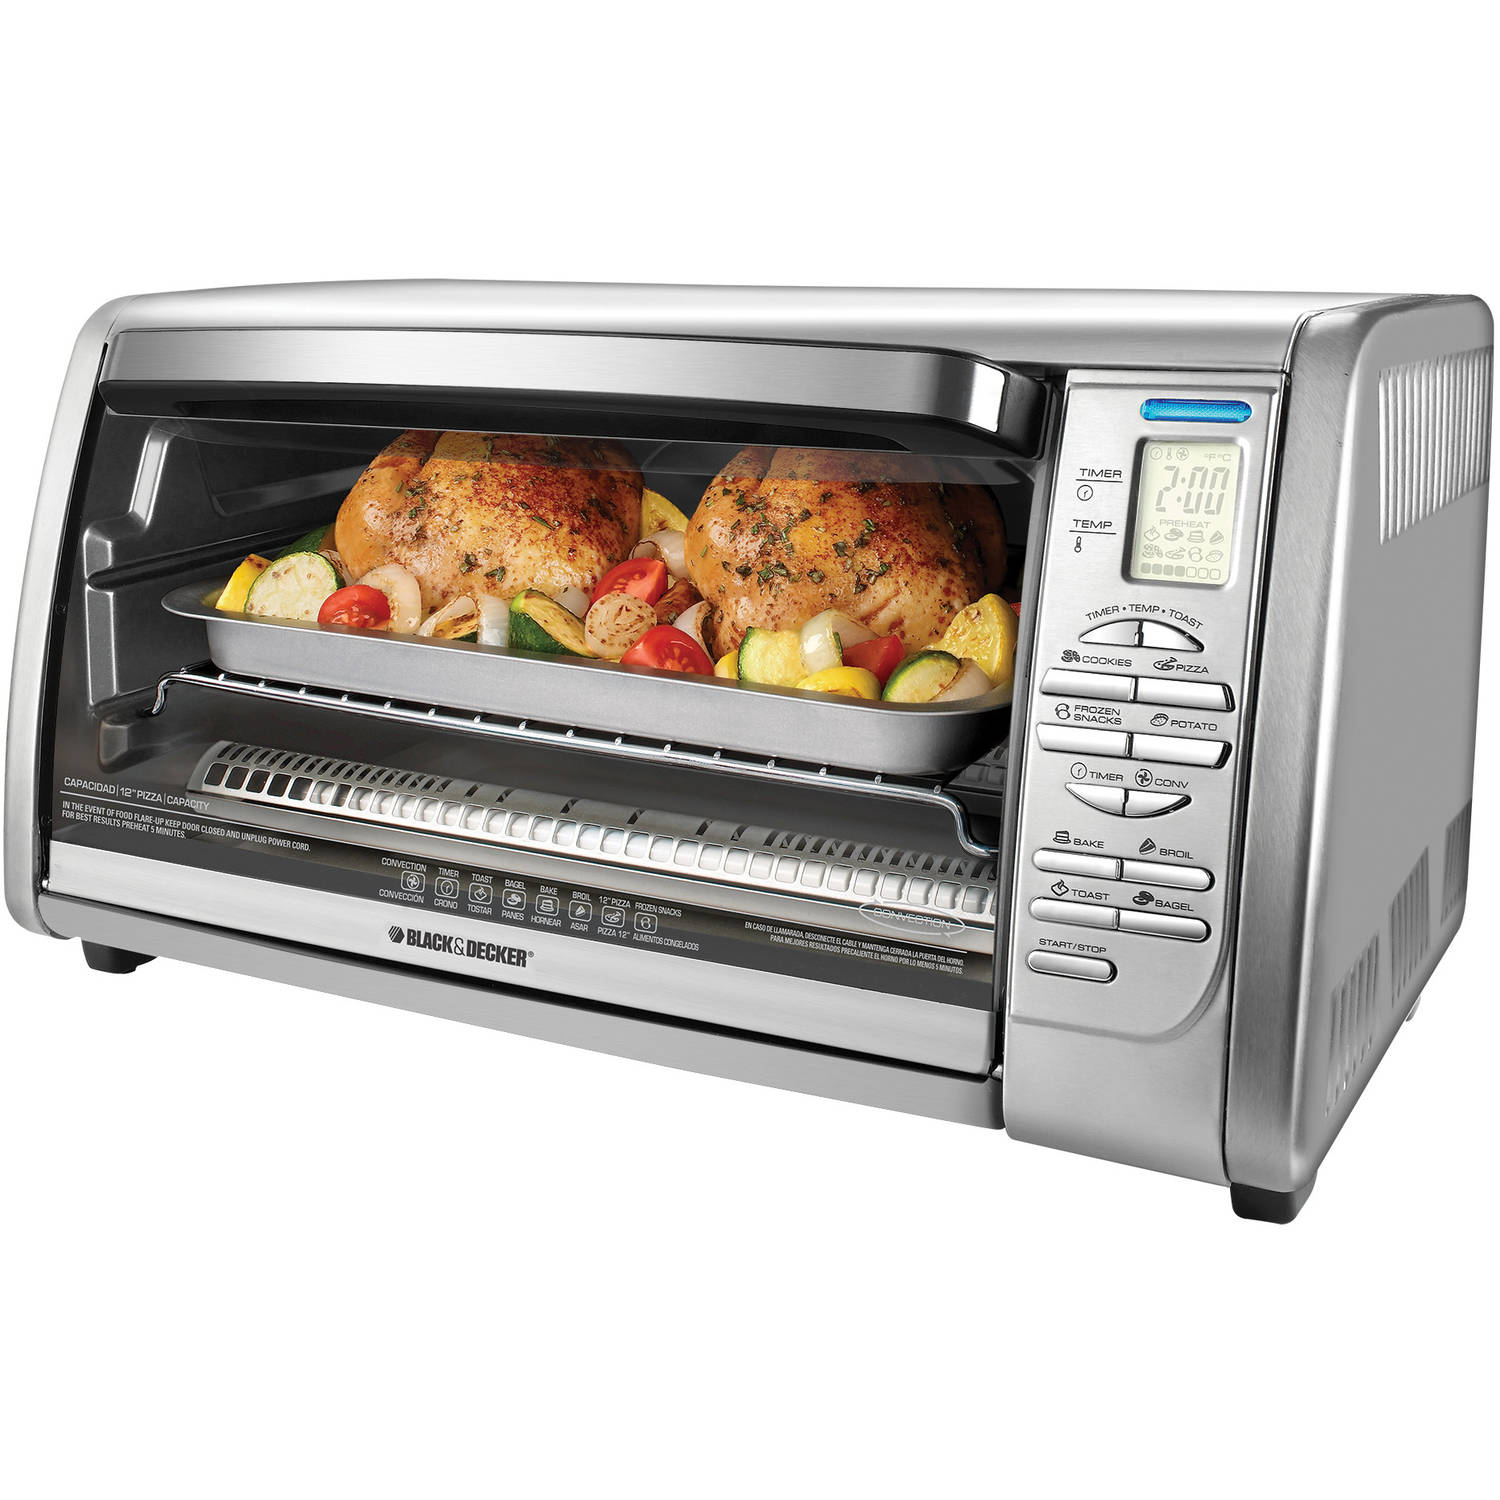 BLACK+DECKER 6-Slice Digital Convection Toaster Oven, Stainless Steel, CTO6335S